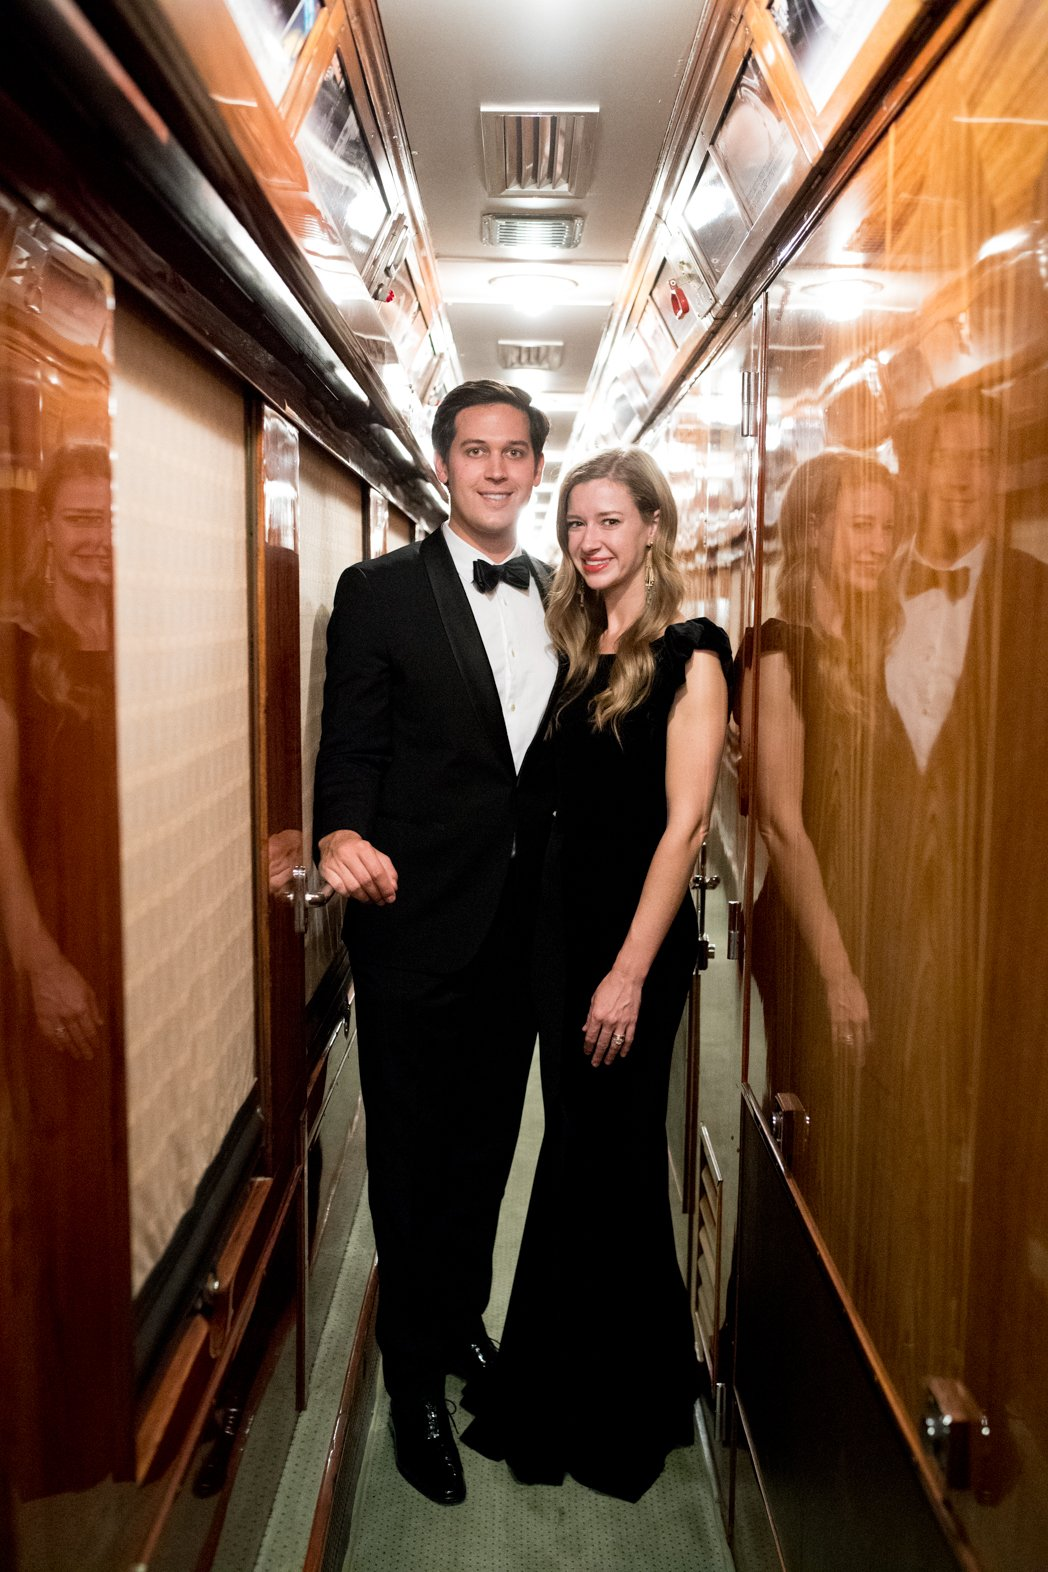 Stacie Flinner Black Tie Dress Code Venice Simplon-Orient-Express-1